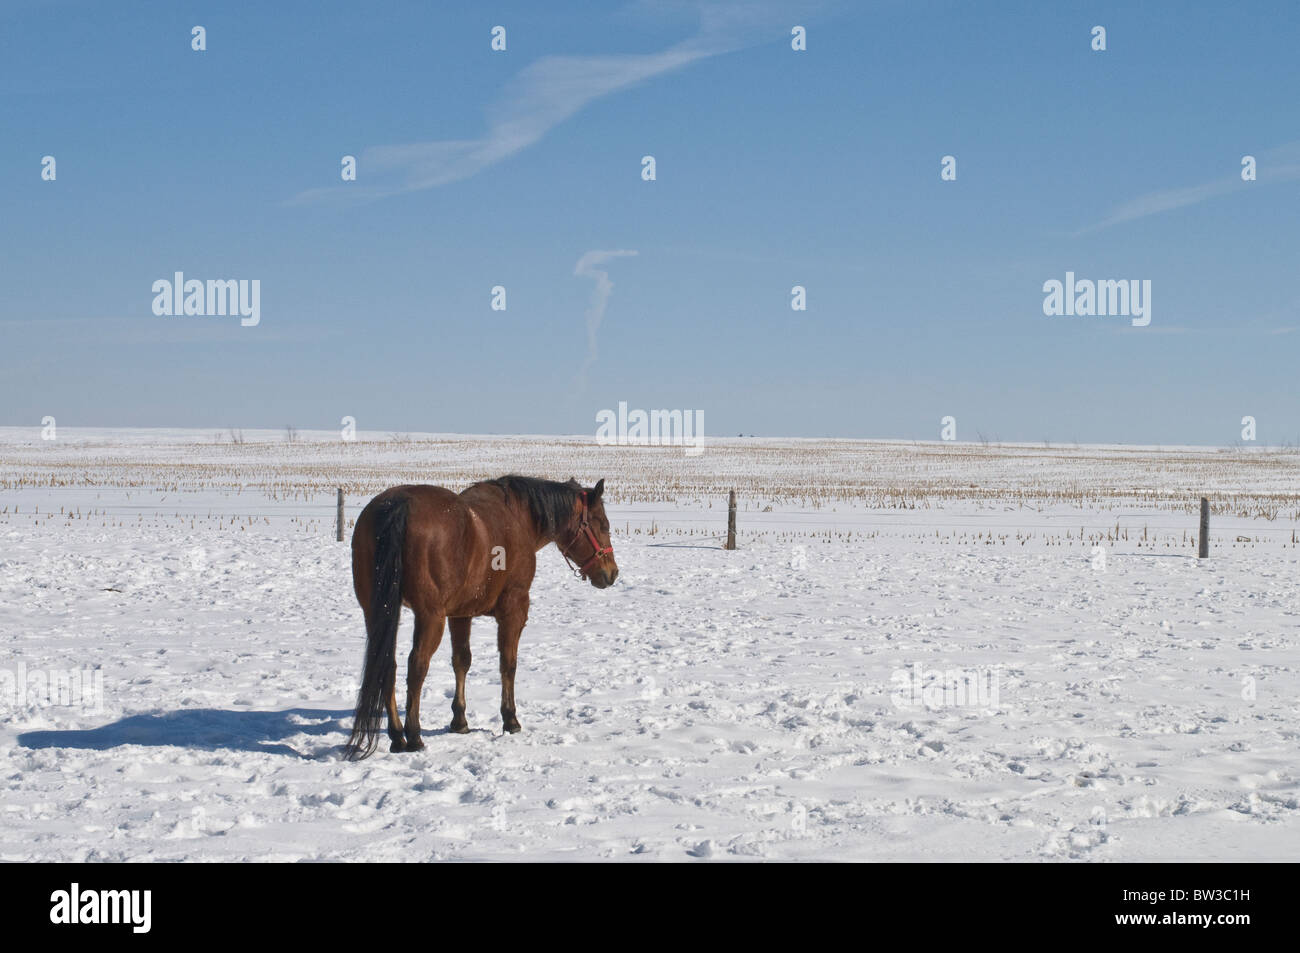 A Canadian winter landscape of a lone horse on a horse farm - Stock Image